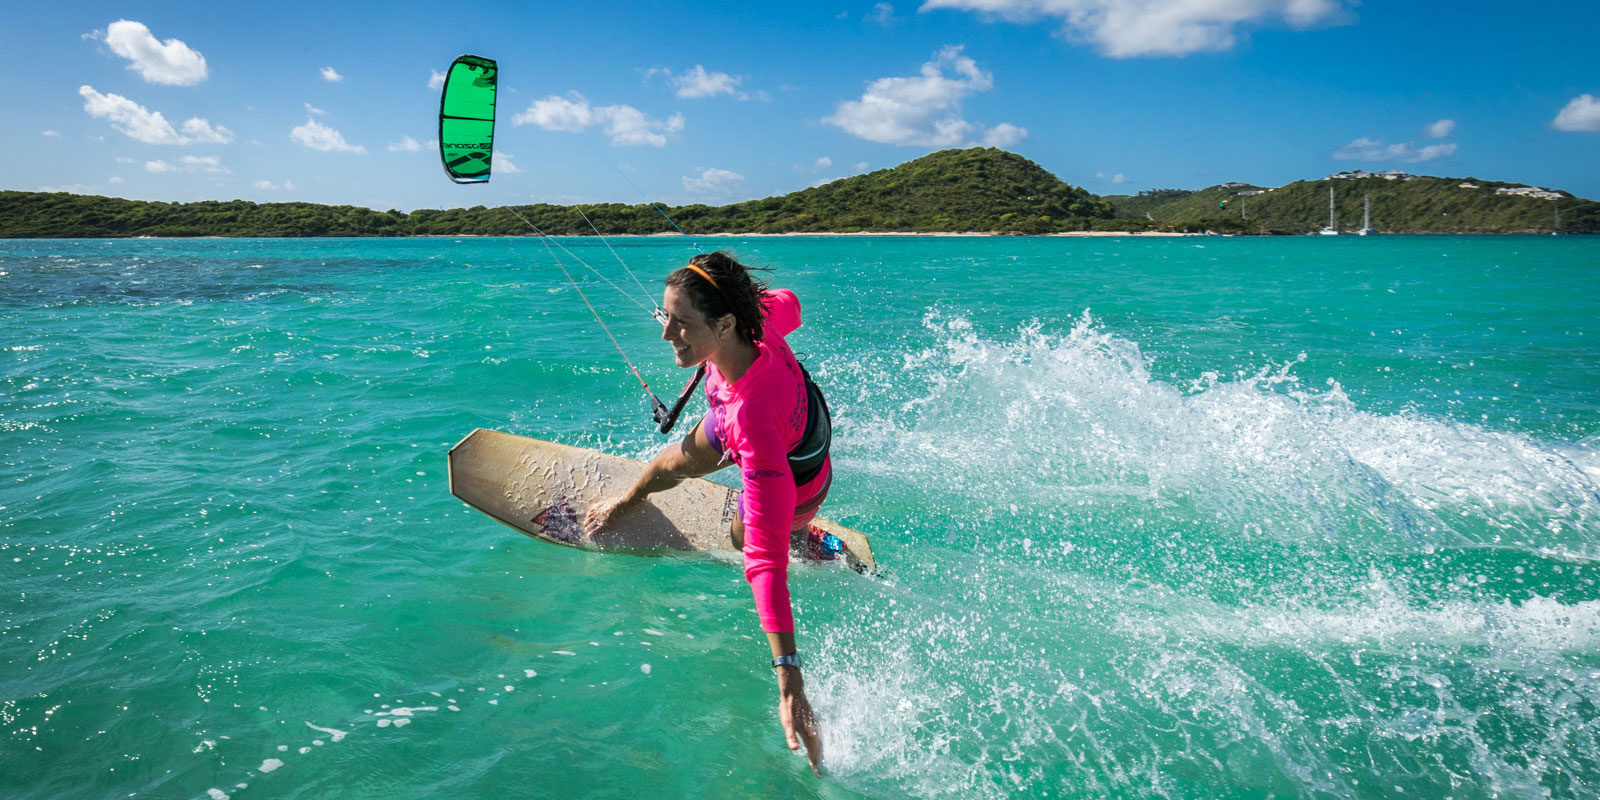 kitesurfing at green island in Antigua